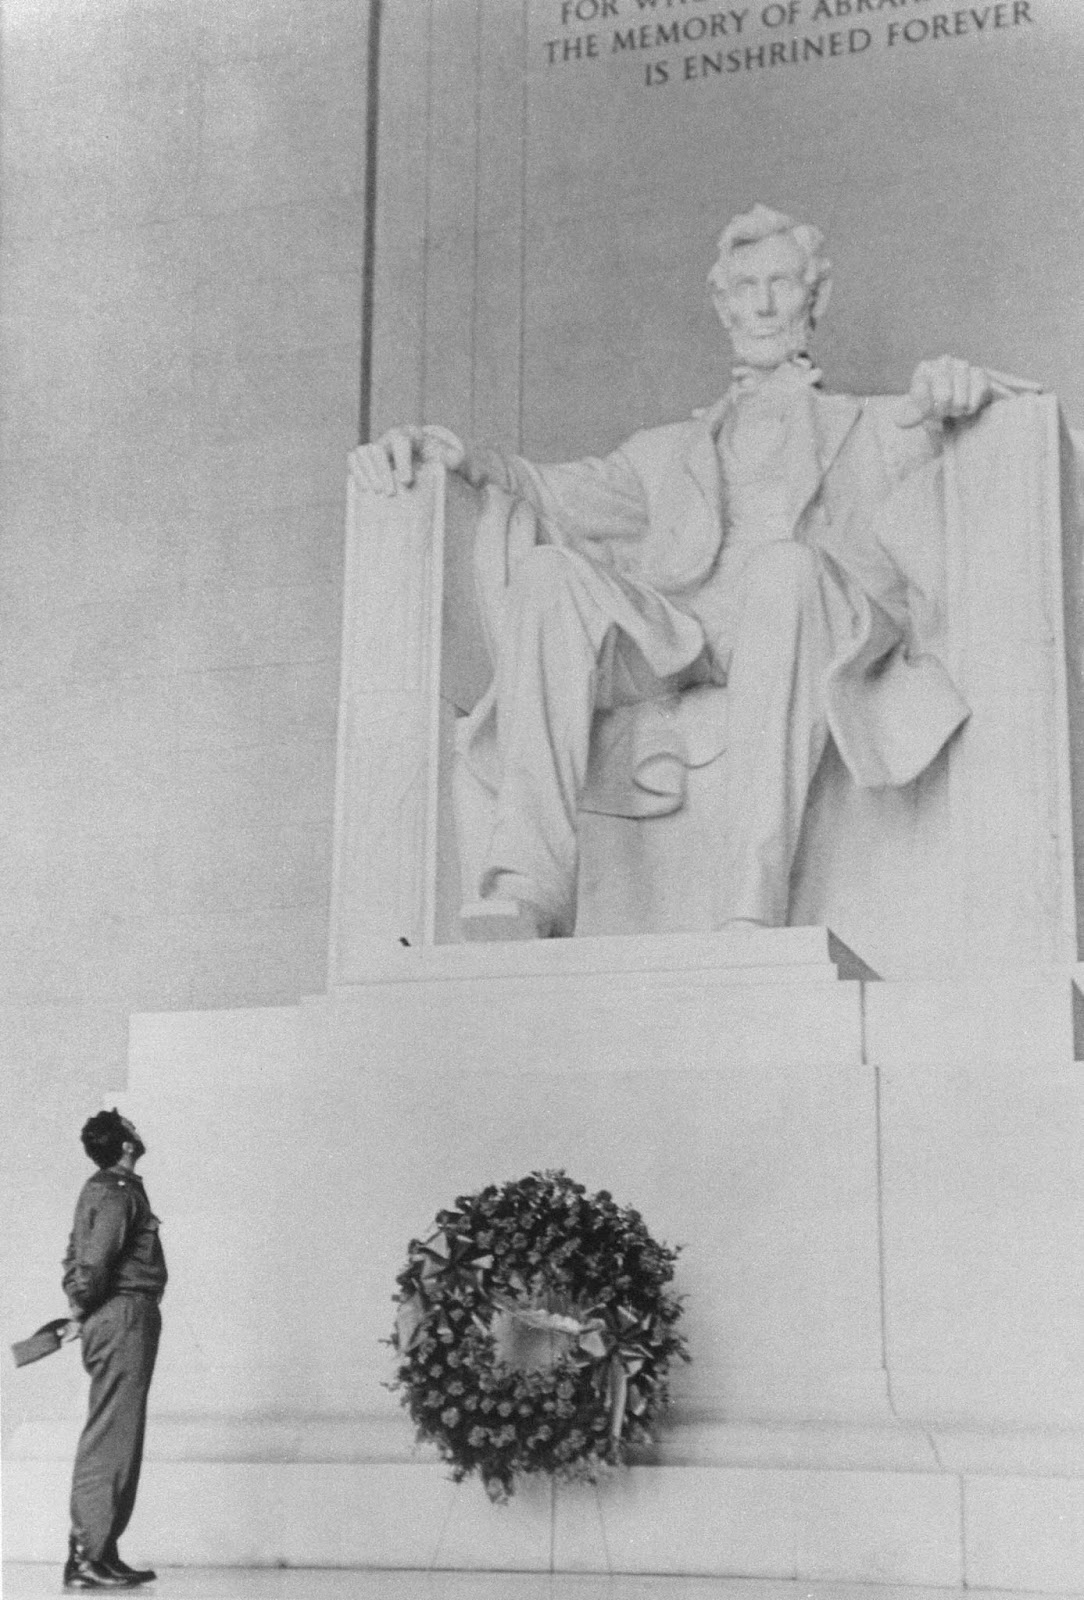 Castro visiting the Lincoln Memorial during his visit to the United States, 1959.